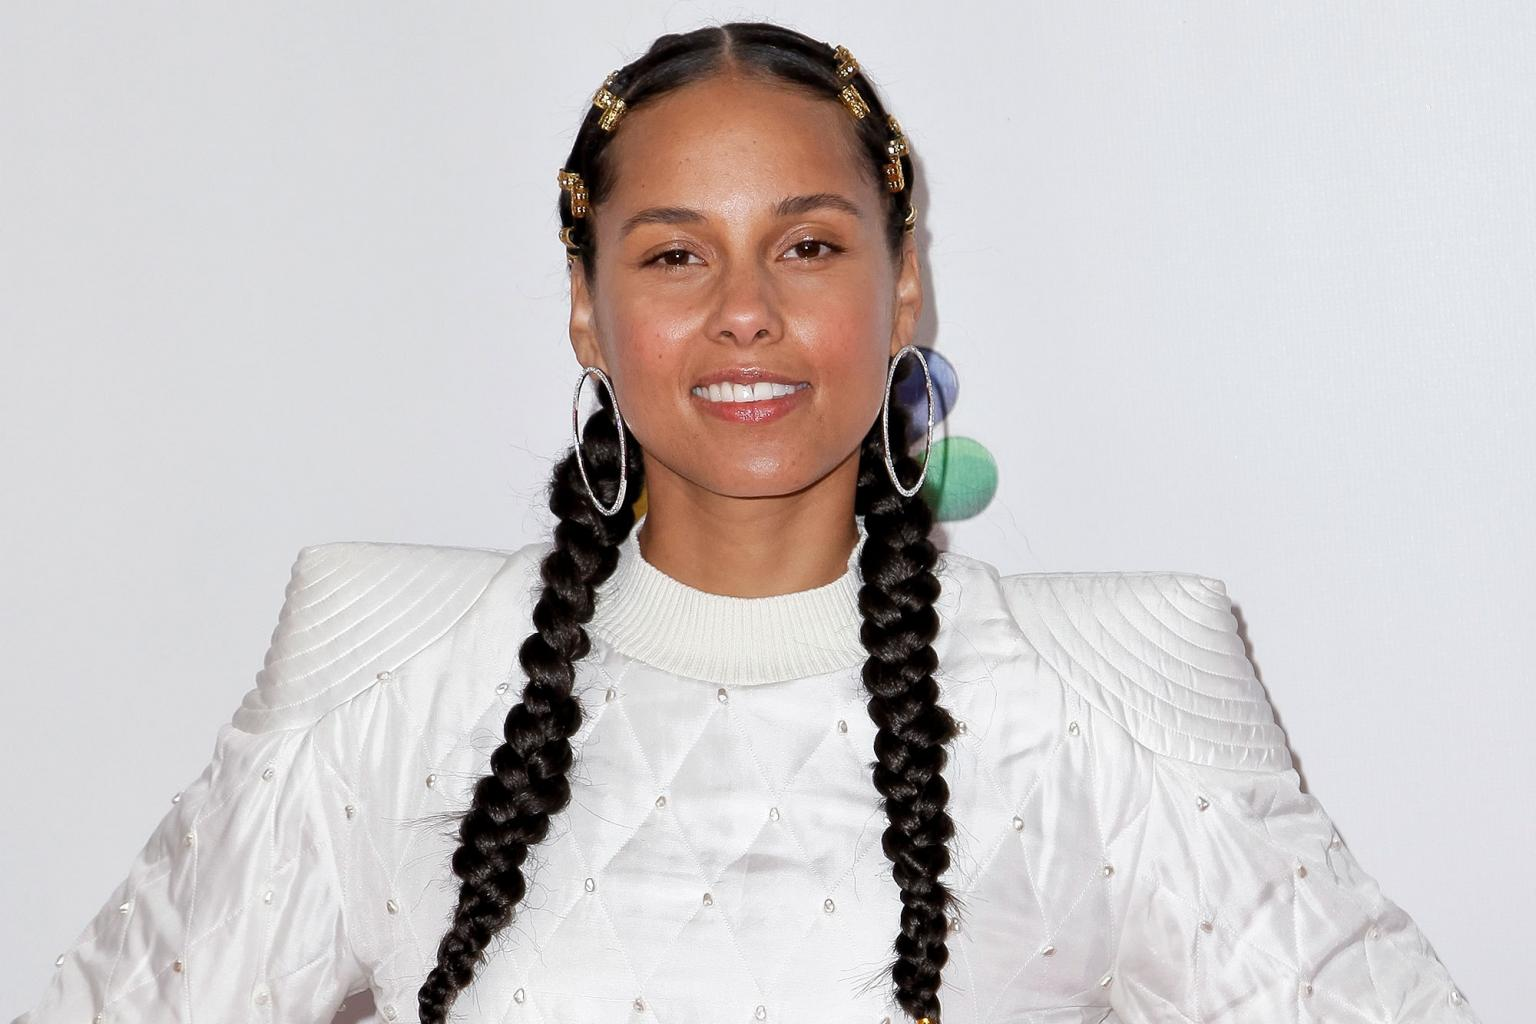 Alicia Keys Debuts New Summer Look with Orange and Pink Braids  '  See the  Photos!